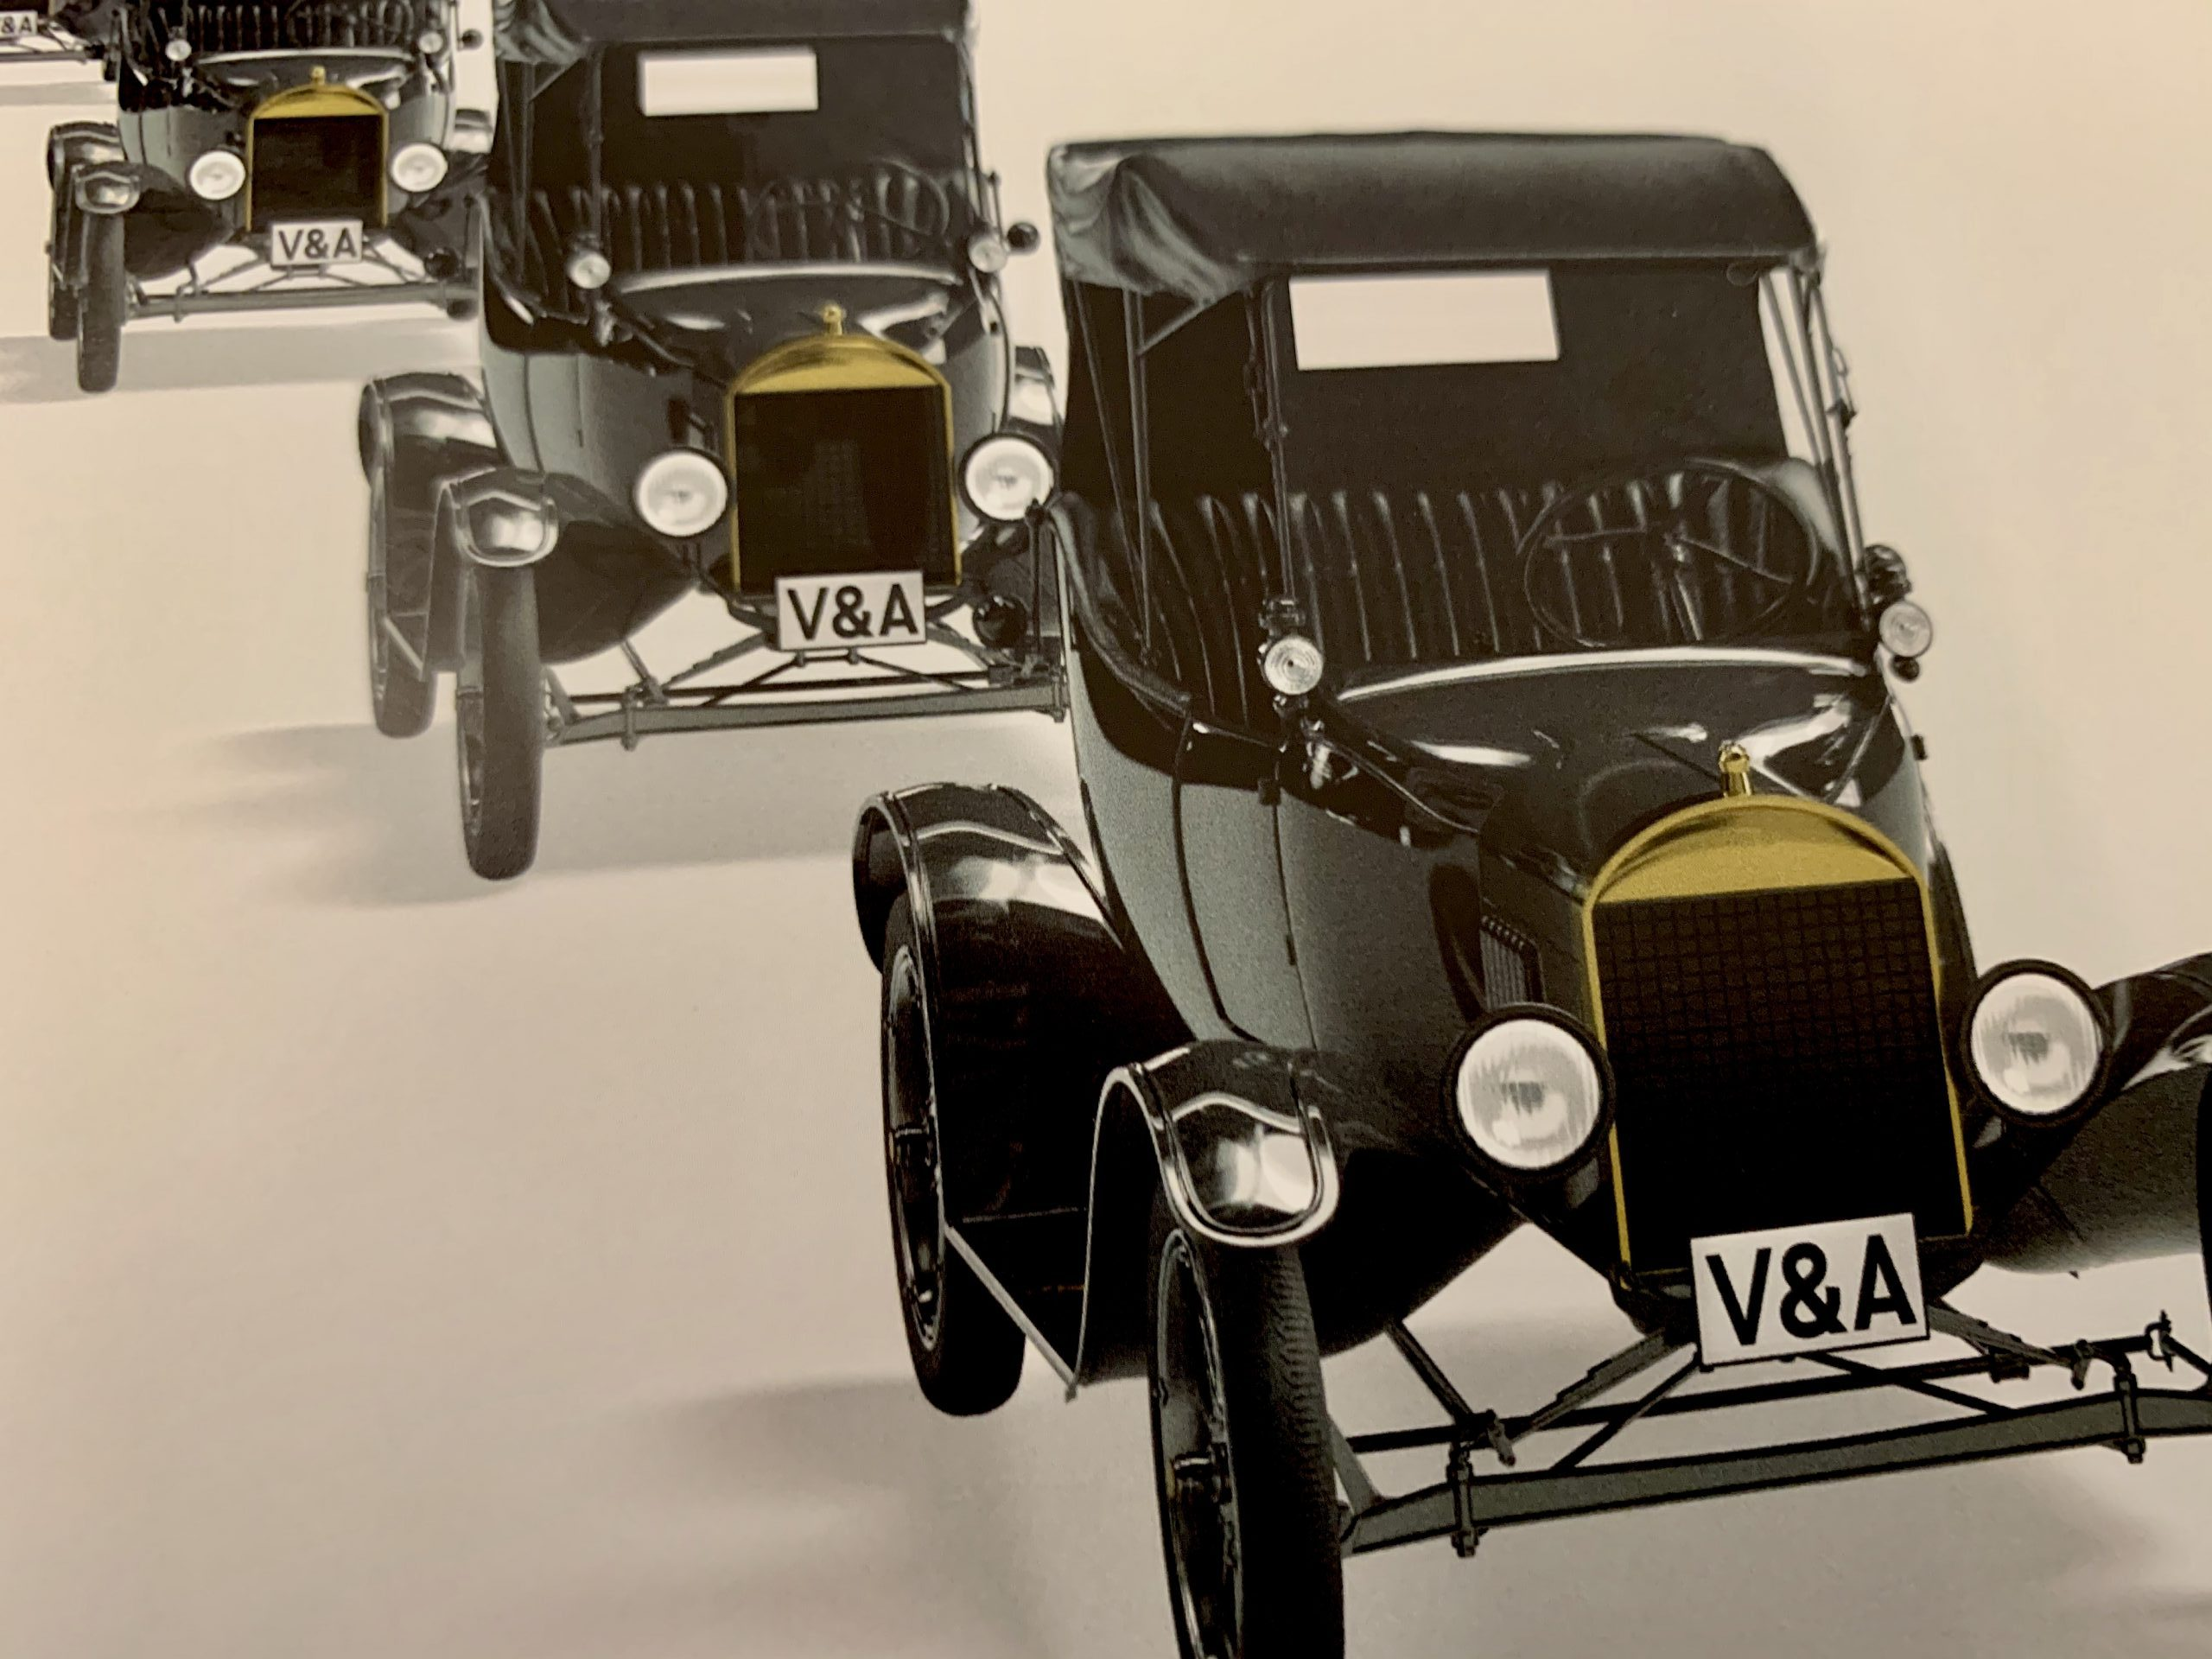 3 black old fashioned cars with numberplates saying V&A